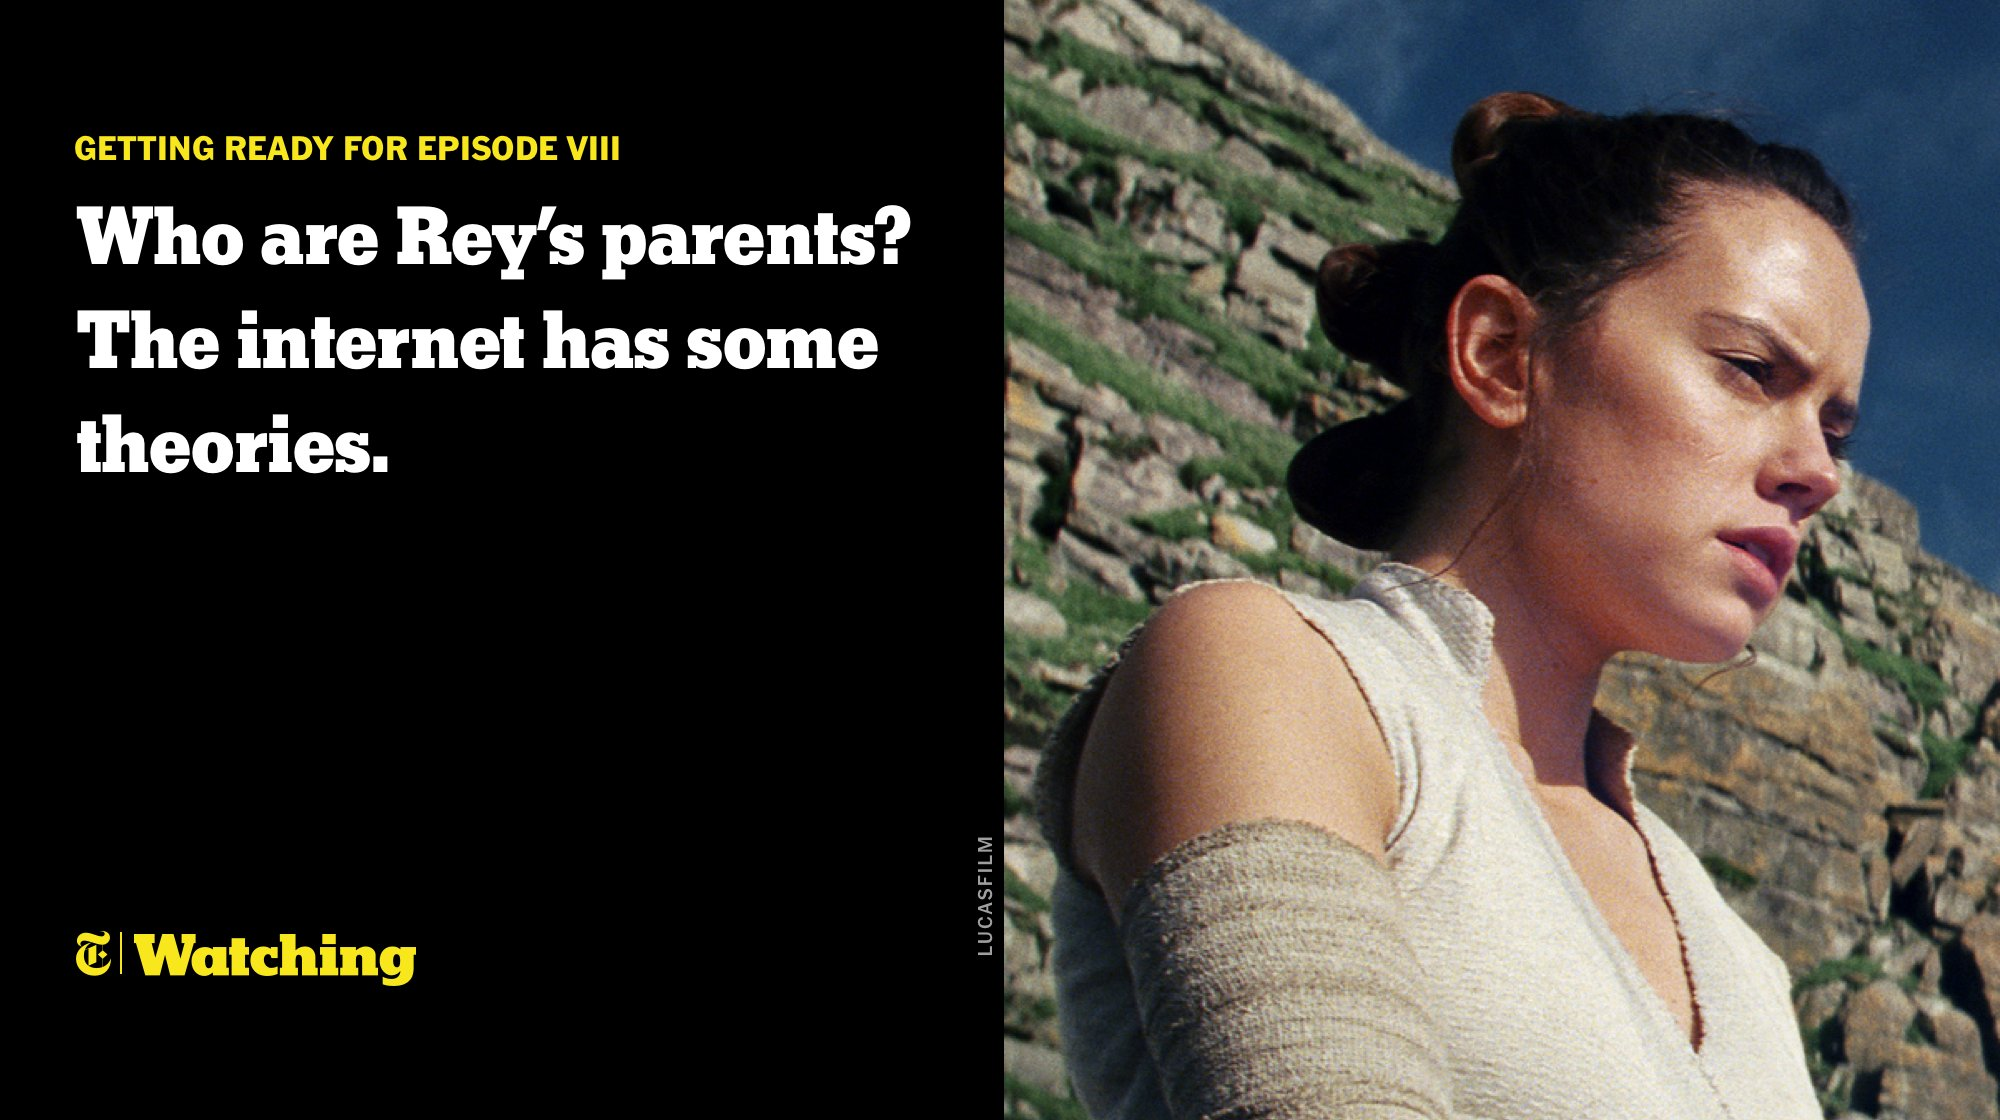 'The Last Jedi:' Who are Rey's parents? The internet has many theories. https://t.co/5q4GNoNOs0 https://t.co/bwPfeDqAvT